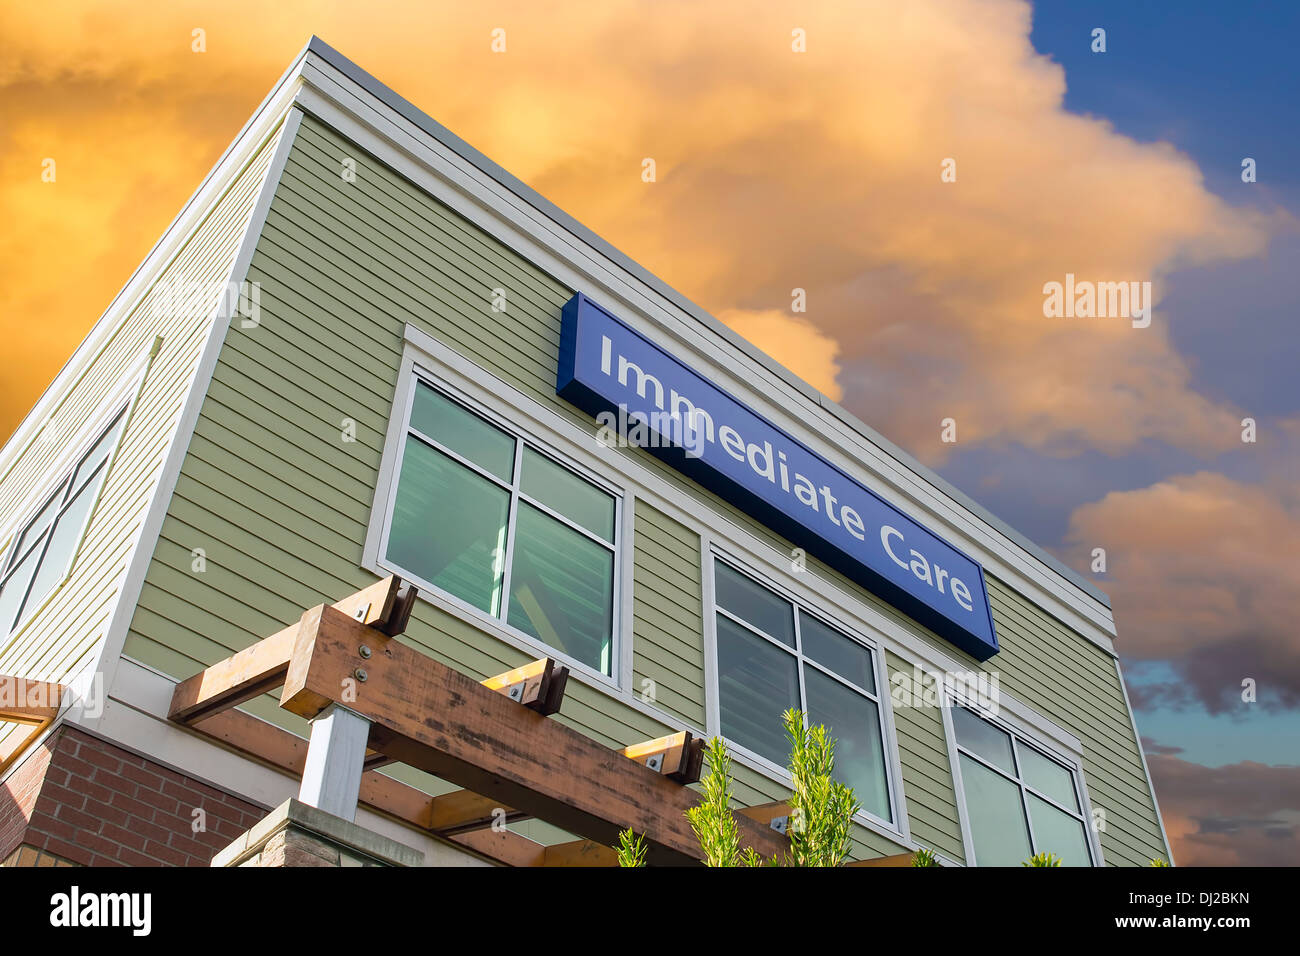 Immediate Care Sign Above Windows Outside Hospital or Emergency Clinic Building Against Sky with Clouds - Stock Image